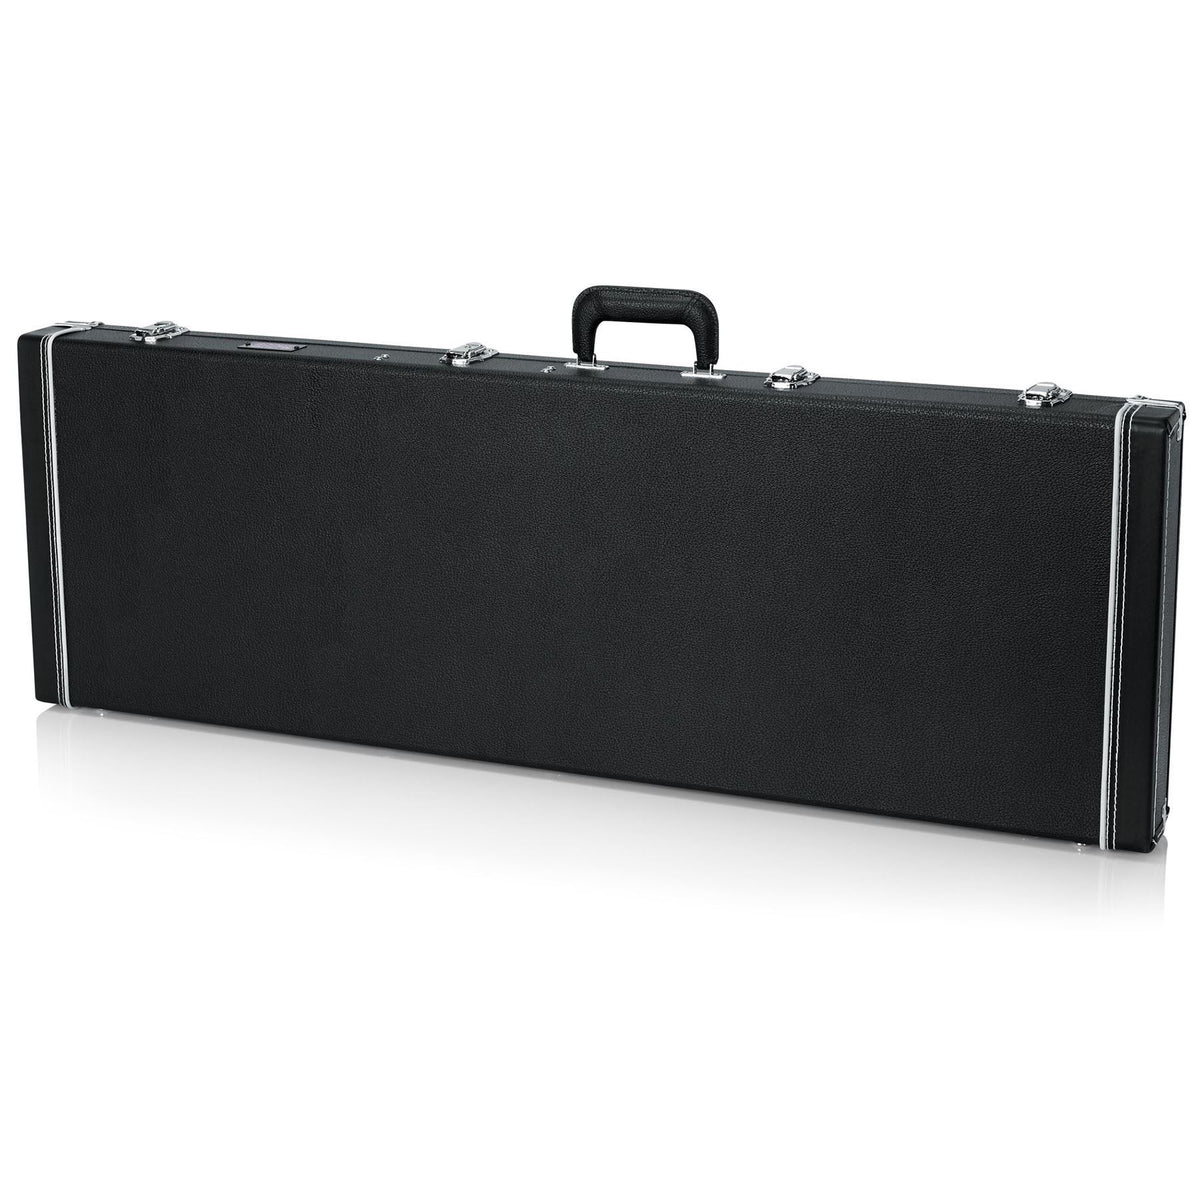 Gator Cases Deluxe Wood Case for Fender Squier Vintage Fretless Modified Jazz Bass Guitars